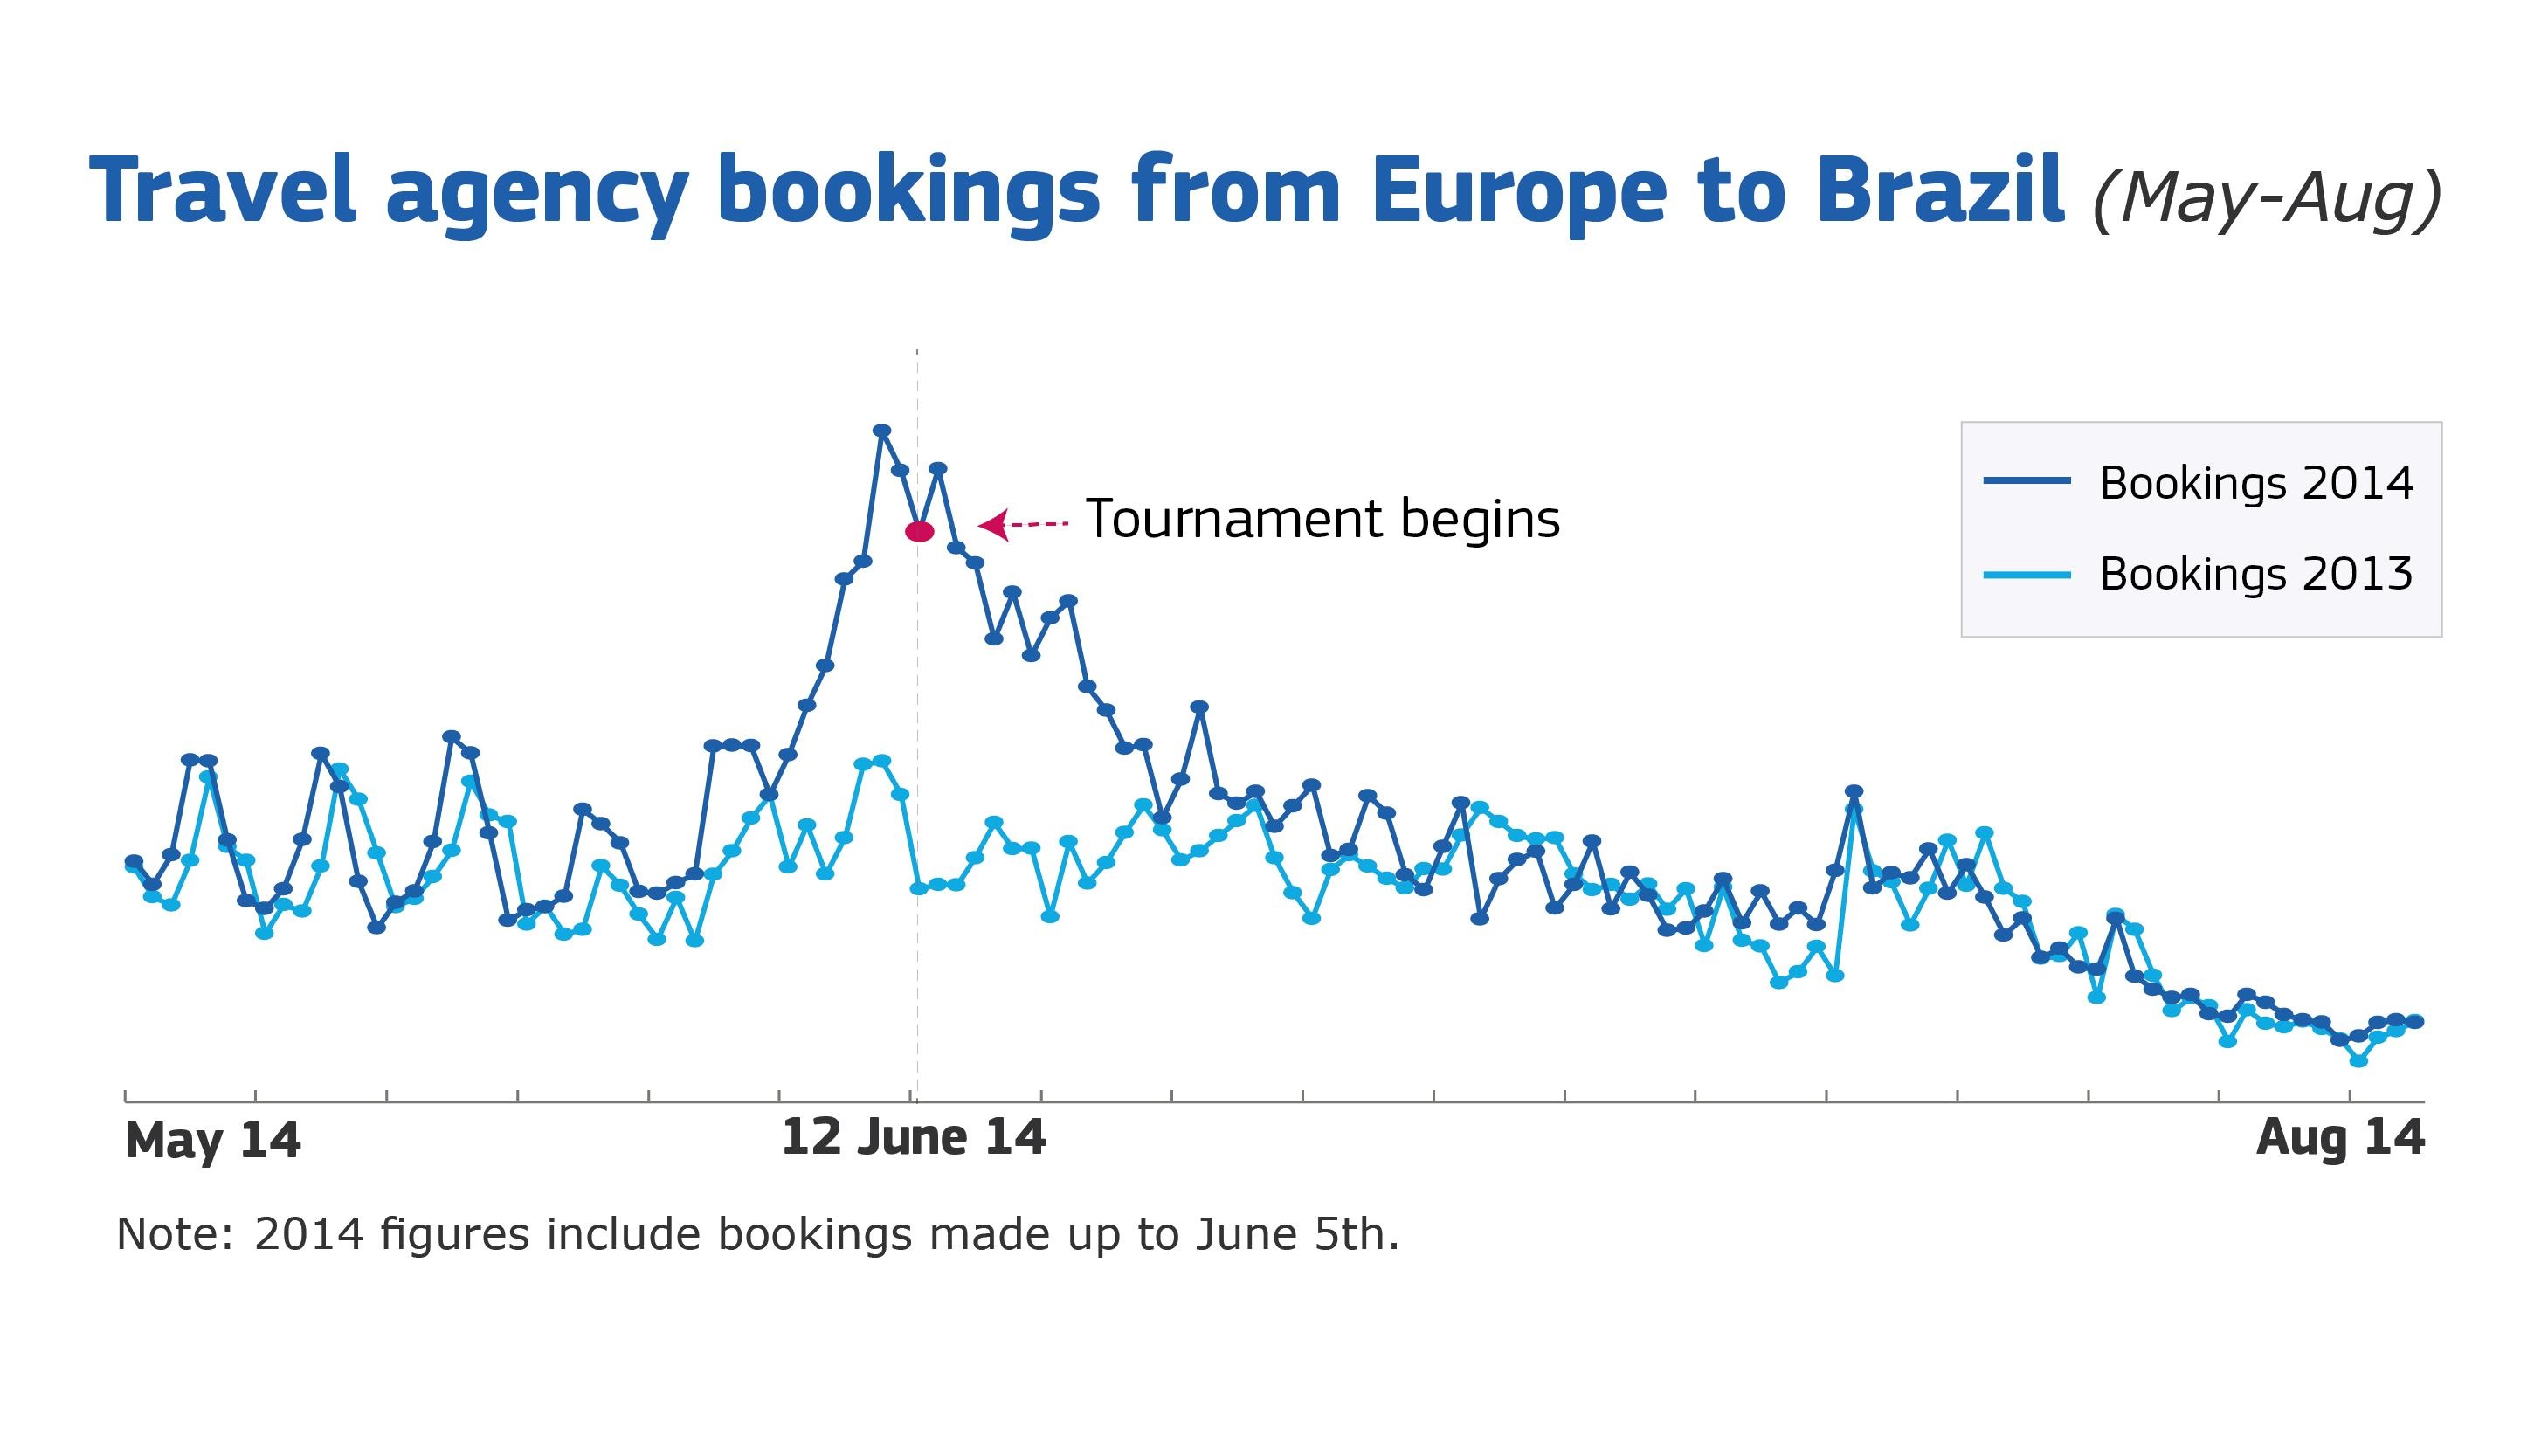 Travel agency bookings from Europe to Brazil